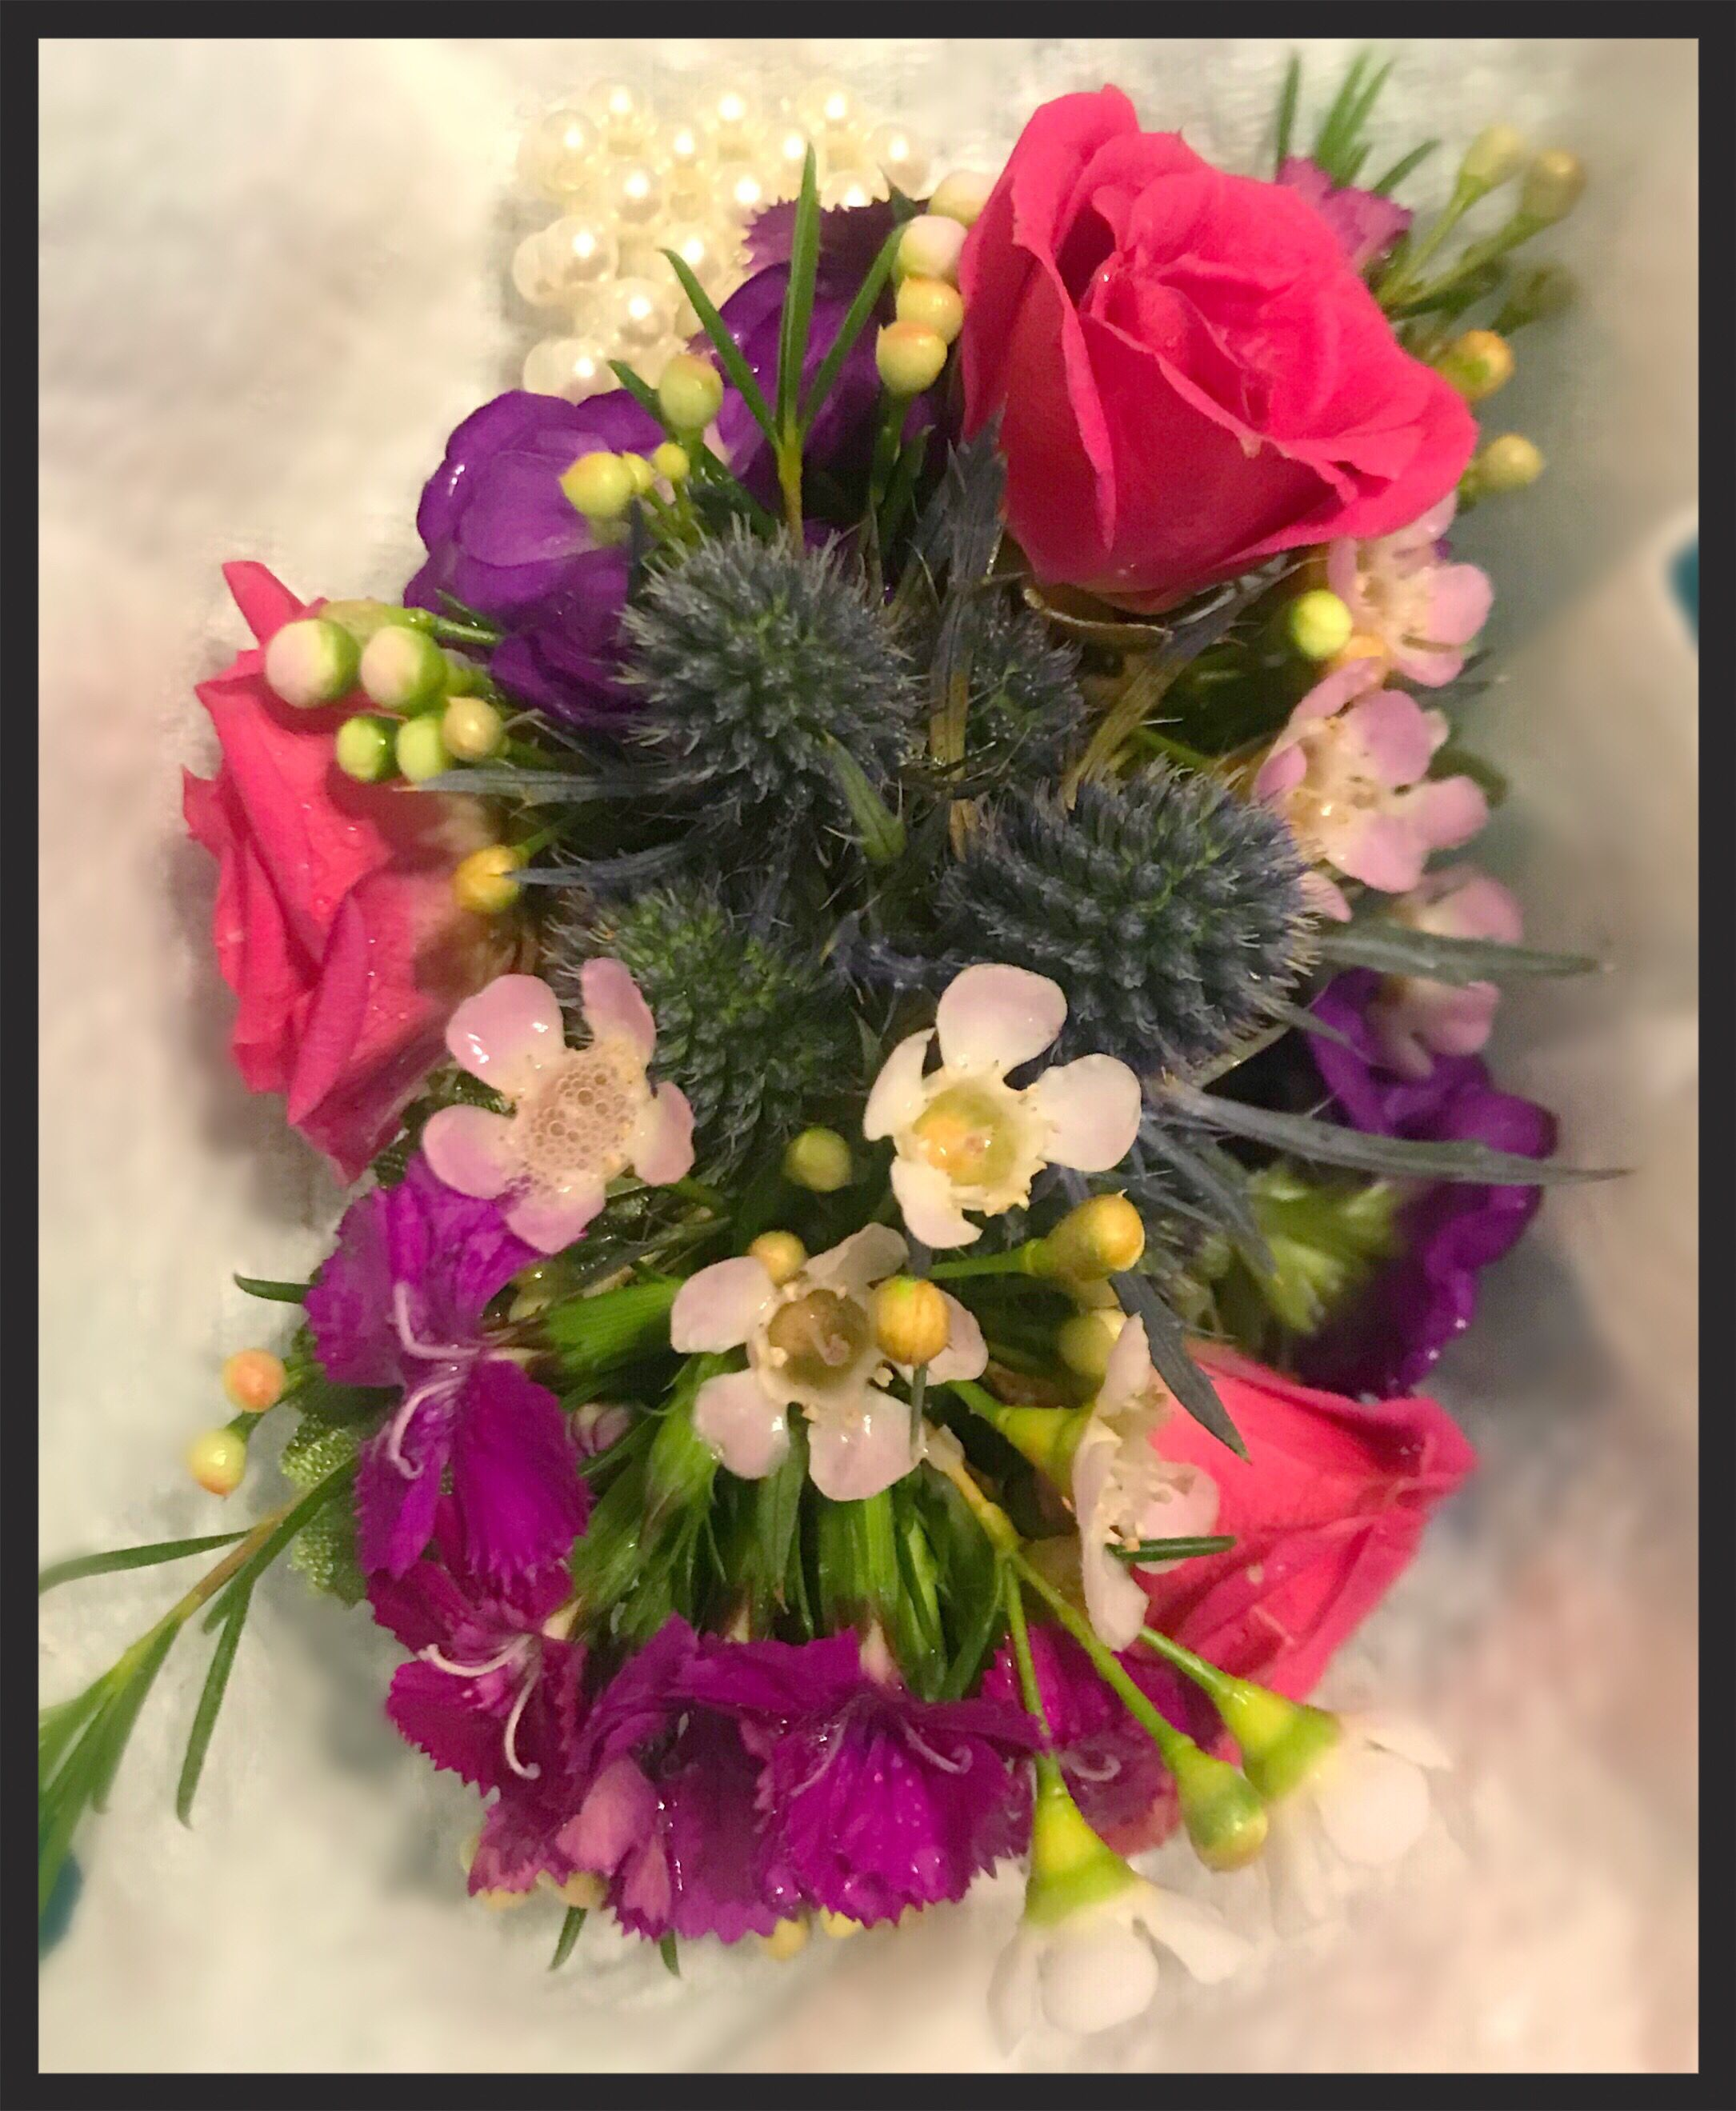 Fresh flower delivery image by Terie Lee on Floral Gallery